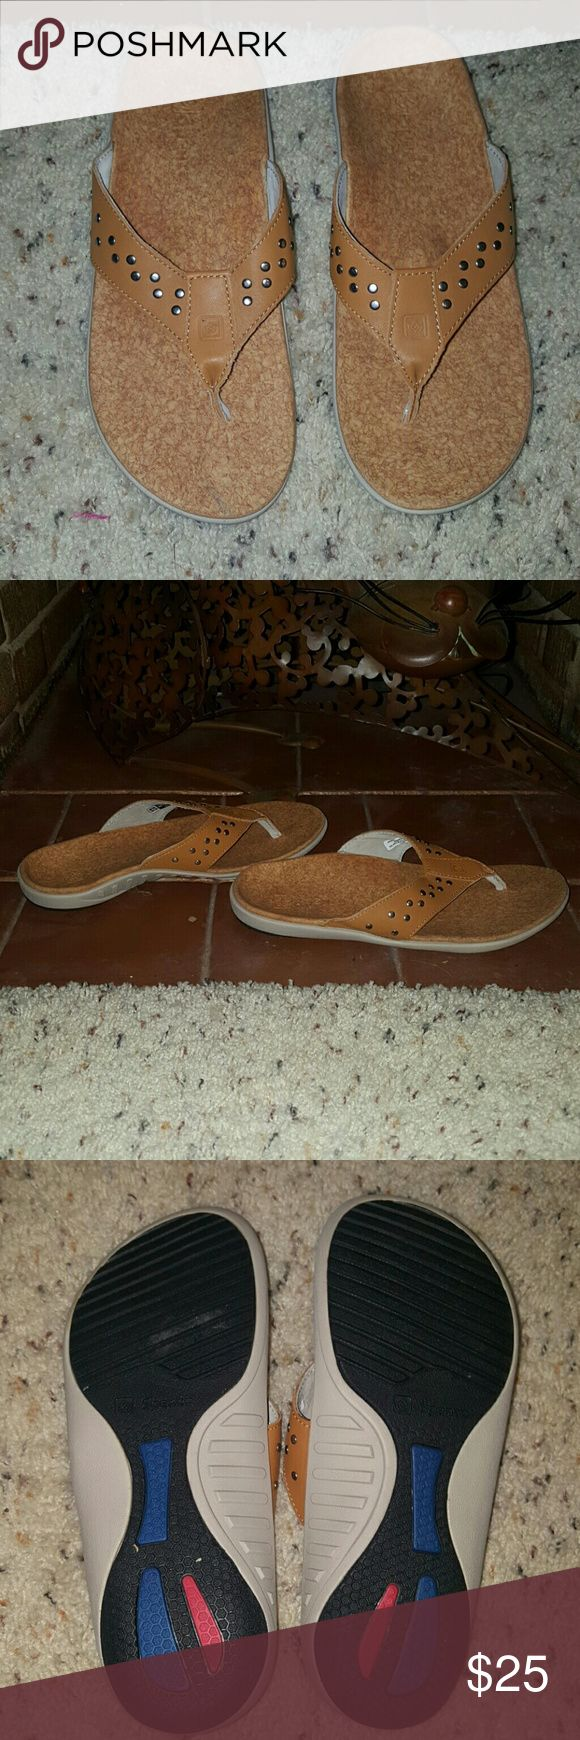 Spenco Total Support Flip Flops - Size 8W ? Size 8 WIDE Camel colored silver studded thong sandal.  ? Spenco footwear incorporates a deep heel cupping, orthotic arch support. Podiatrist recommended.    Brand new, never worn. Do not have the box.  Very comfortable. Speno Shoes Sandals